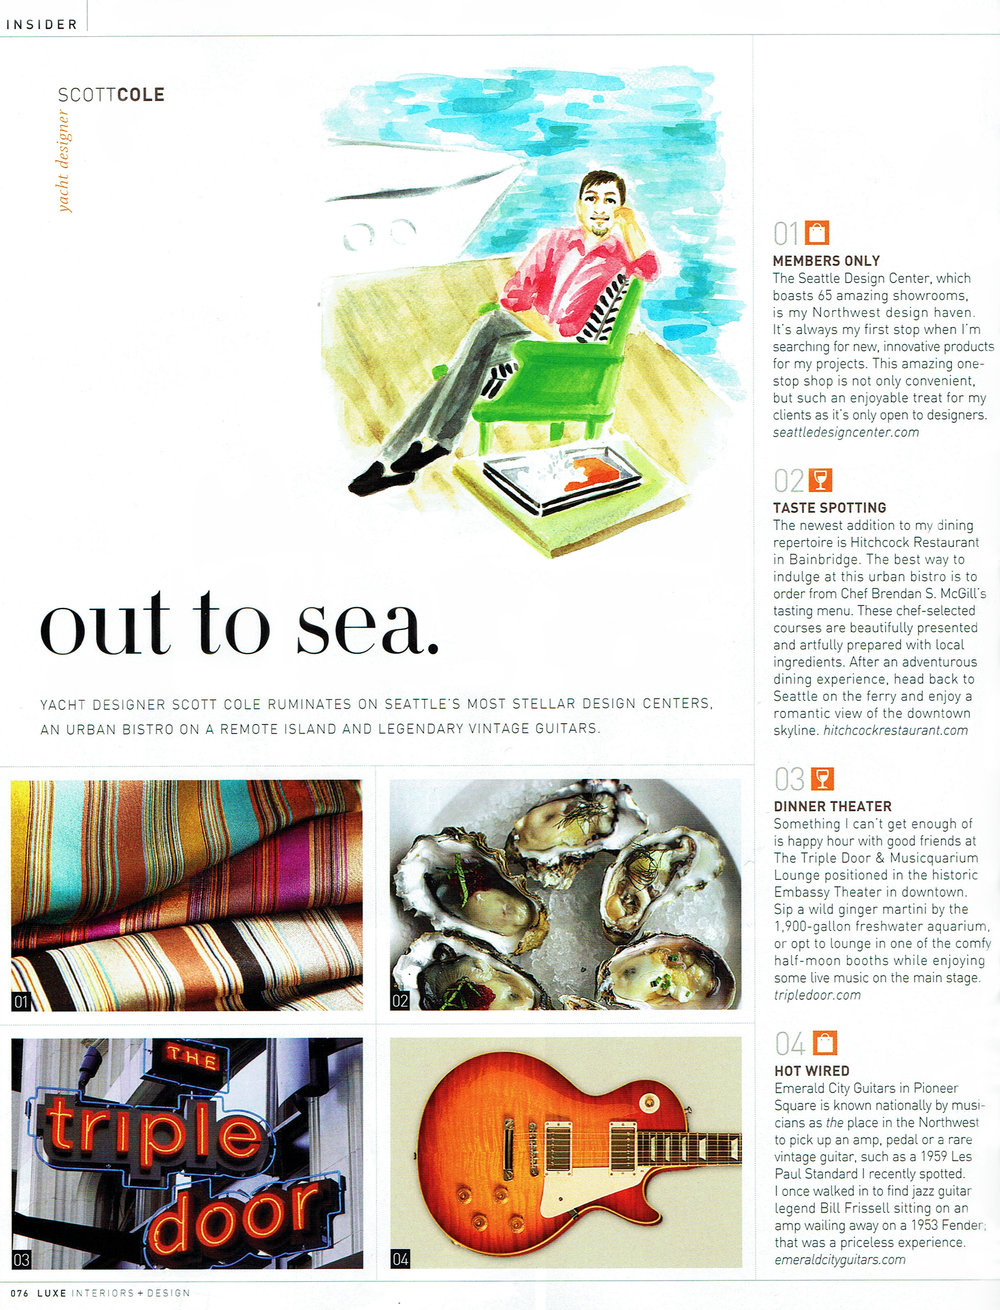 Luxe magazine SC Designer Profile article-Recovered (nice copy).jpg